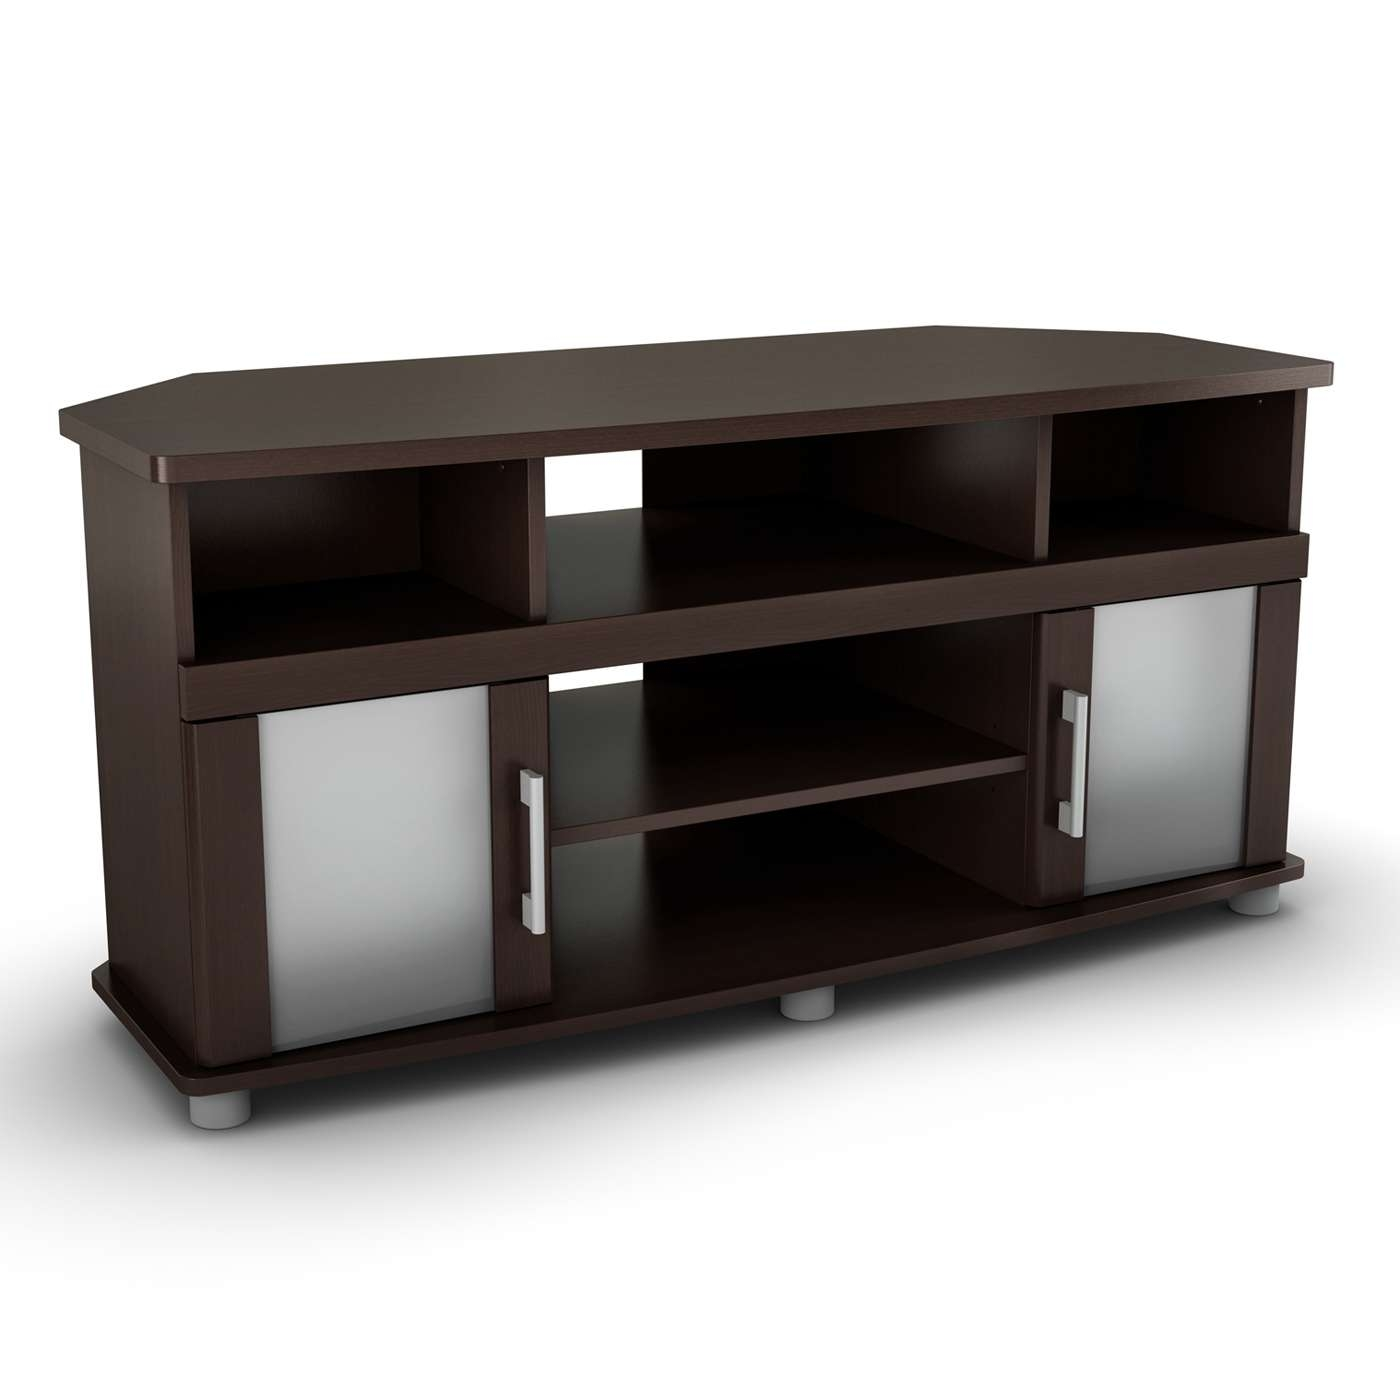 South Shore Furniture City Life Corner Tv Stand | Lowe's Canada In Small Corner Tv Stands (View 18 of 20)